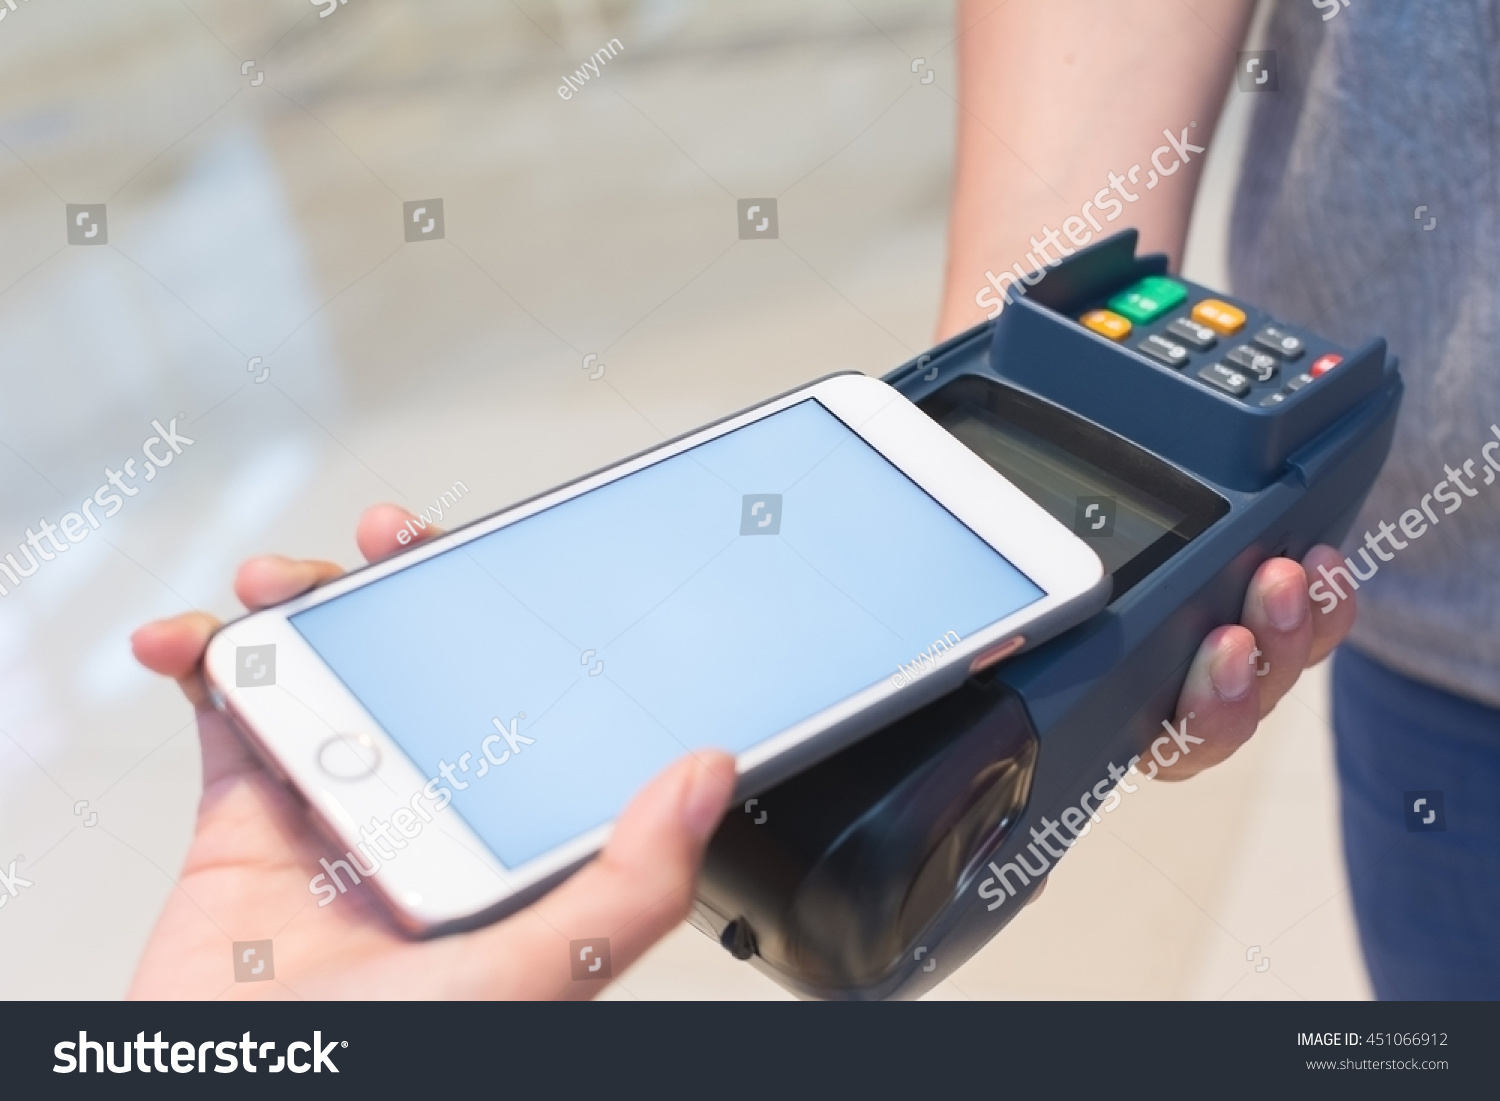 how to pay mobile phone bill